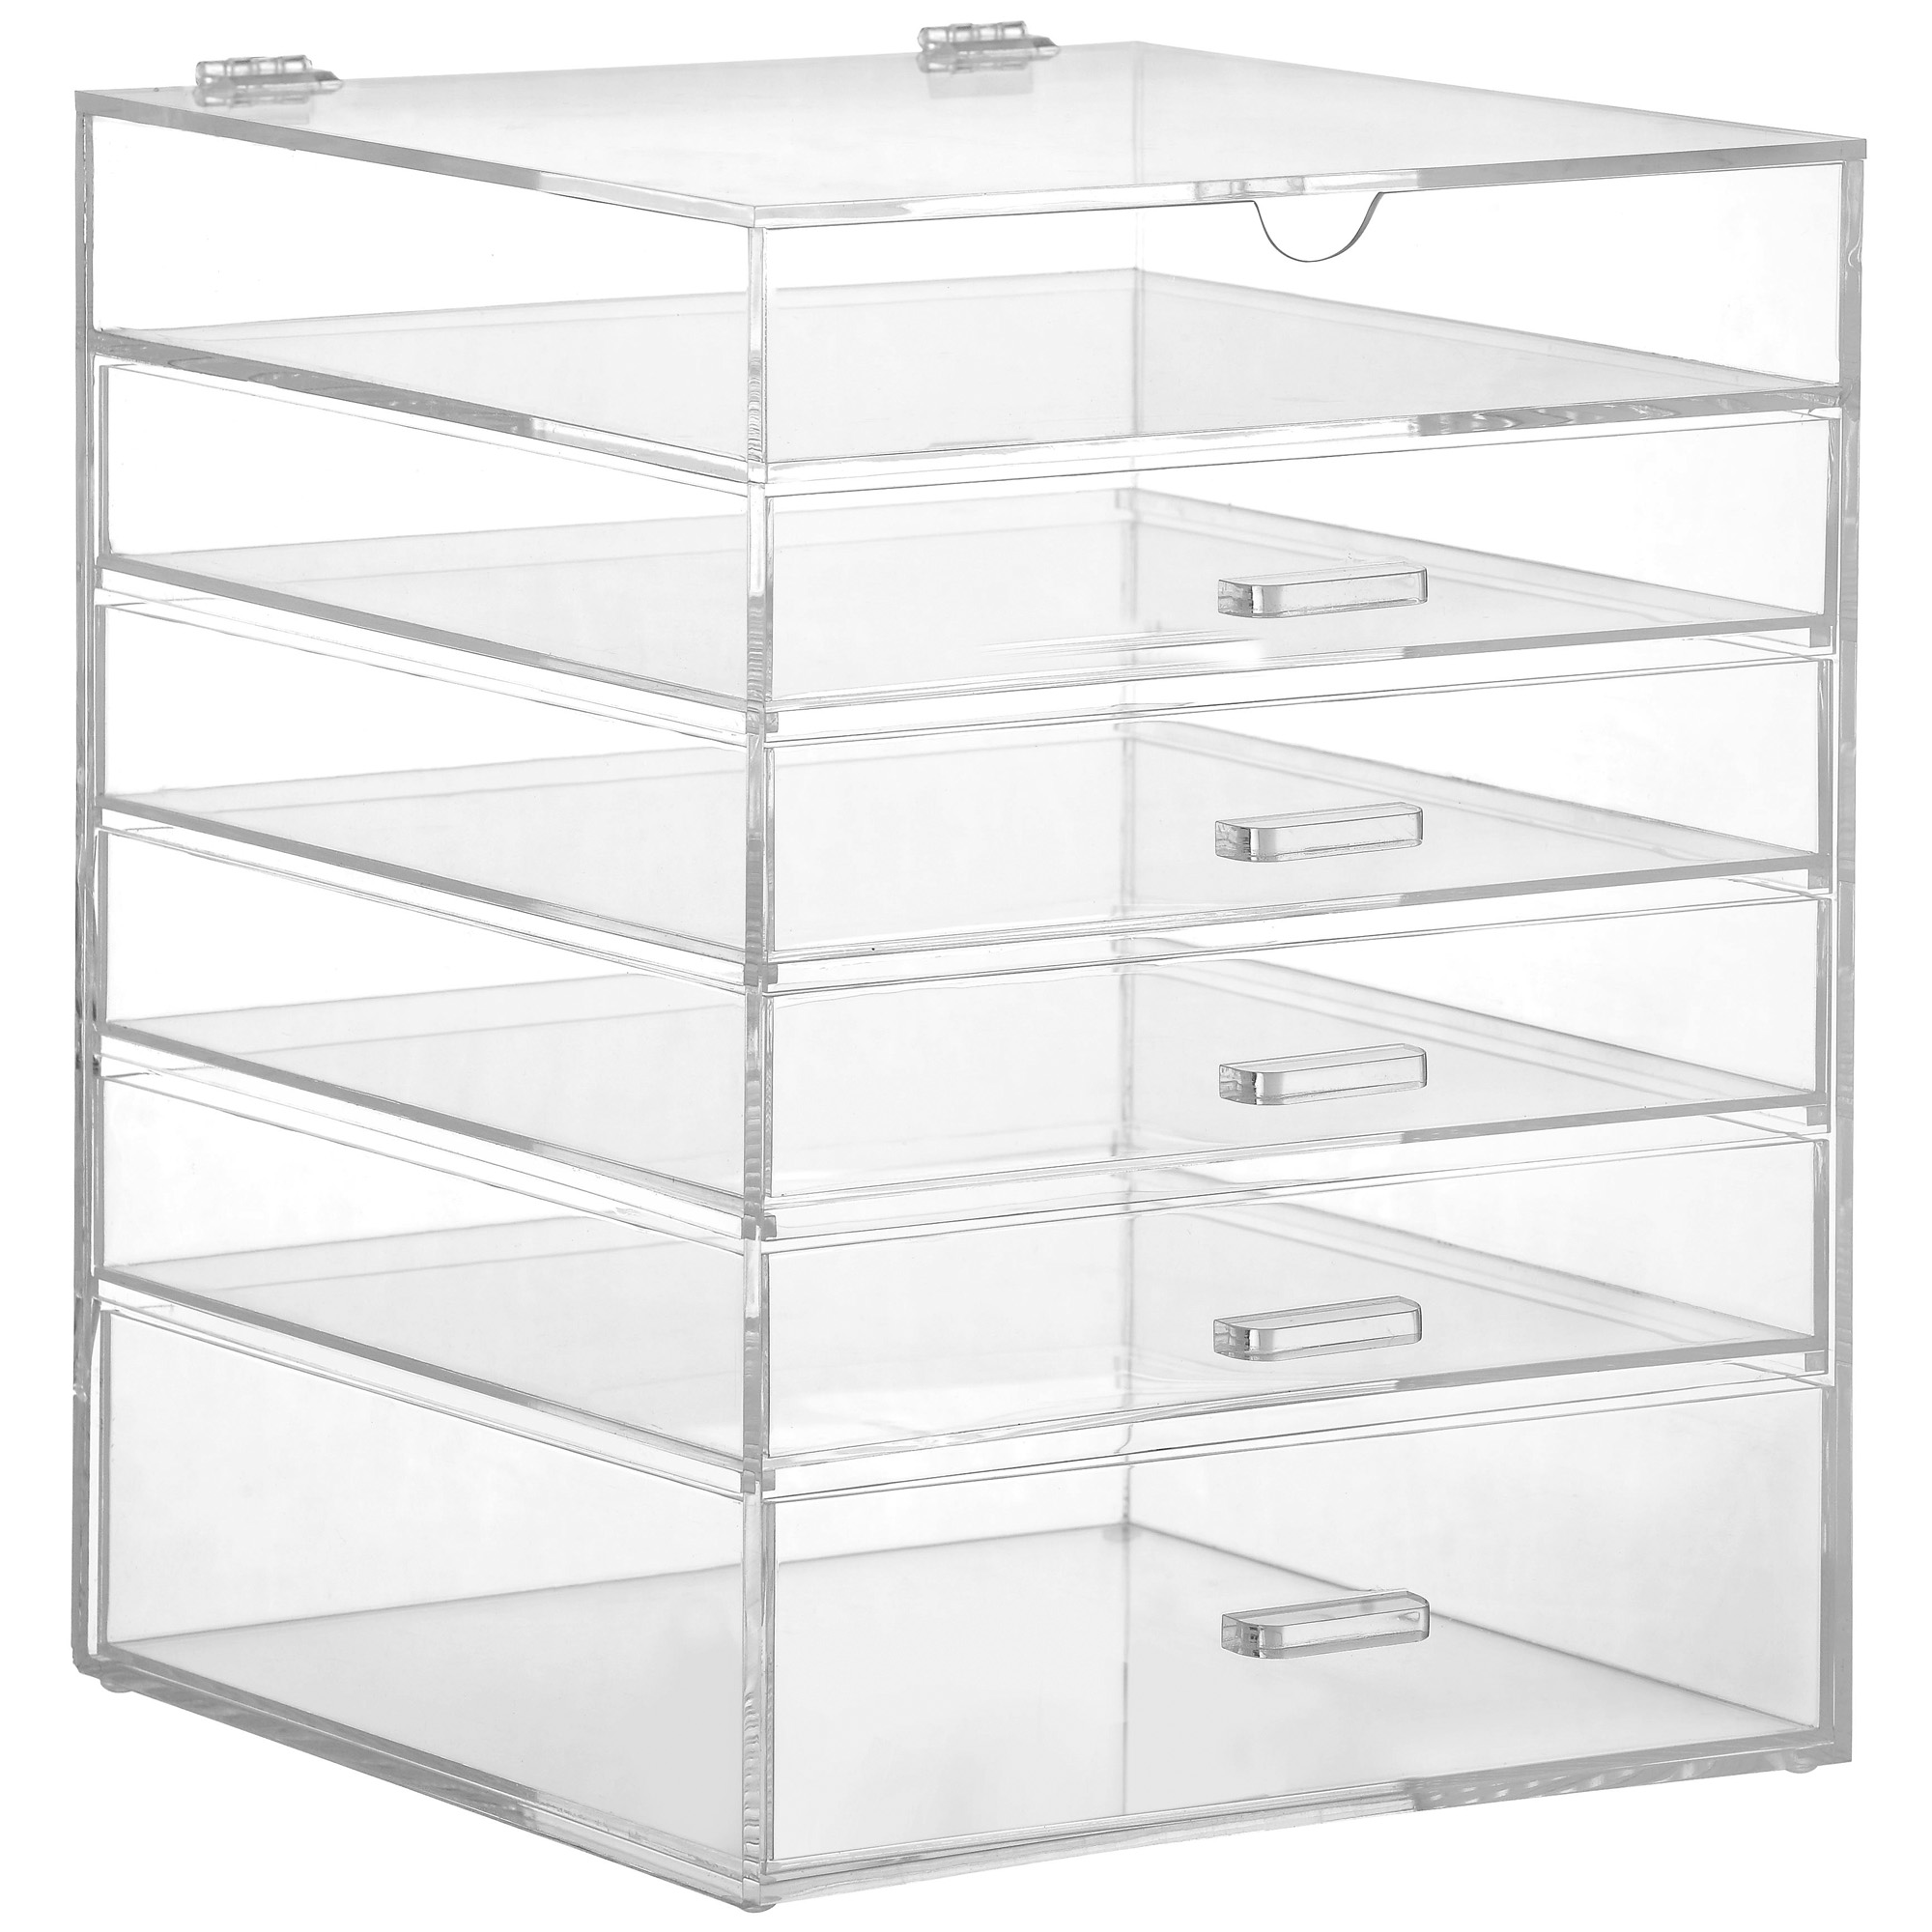 White Makeup Organizer Beautify Large 6 Tier Clear Acrylic Cosmetic Makeup Organiser Case